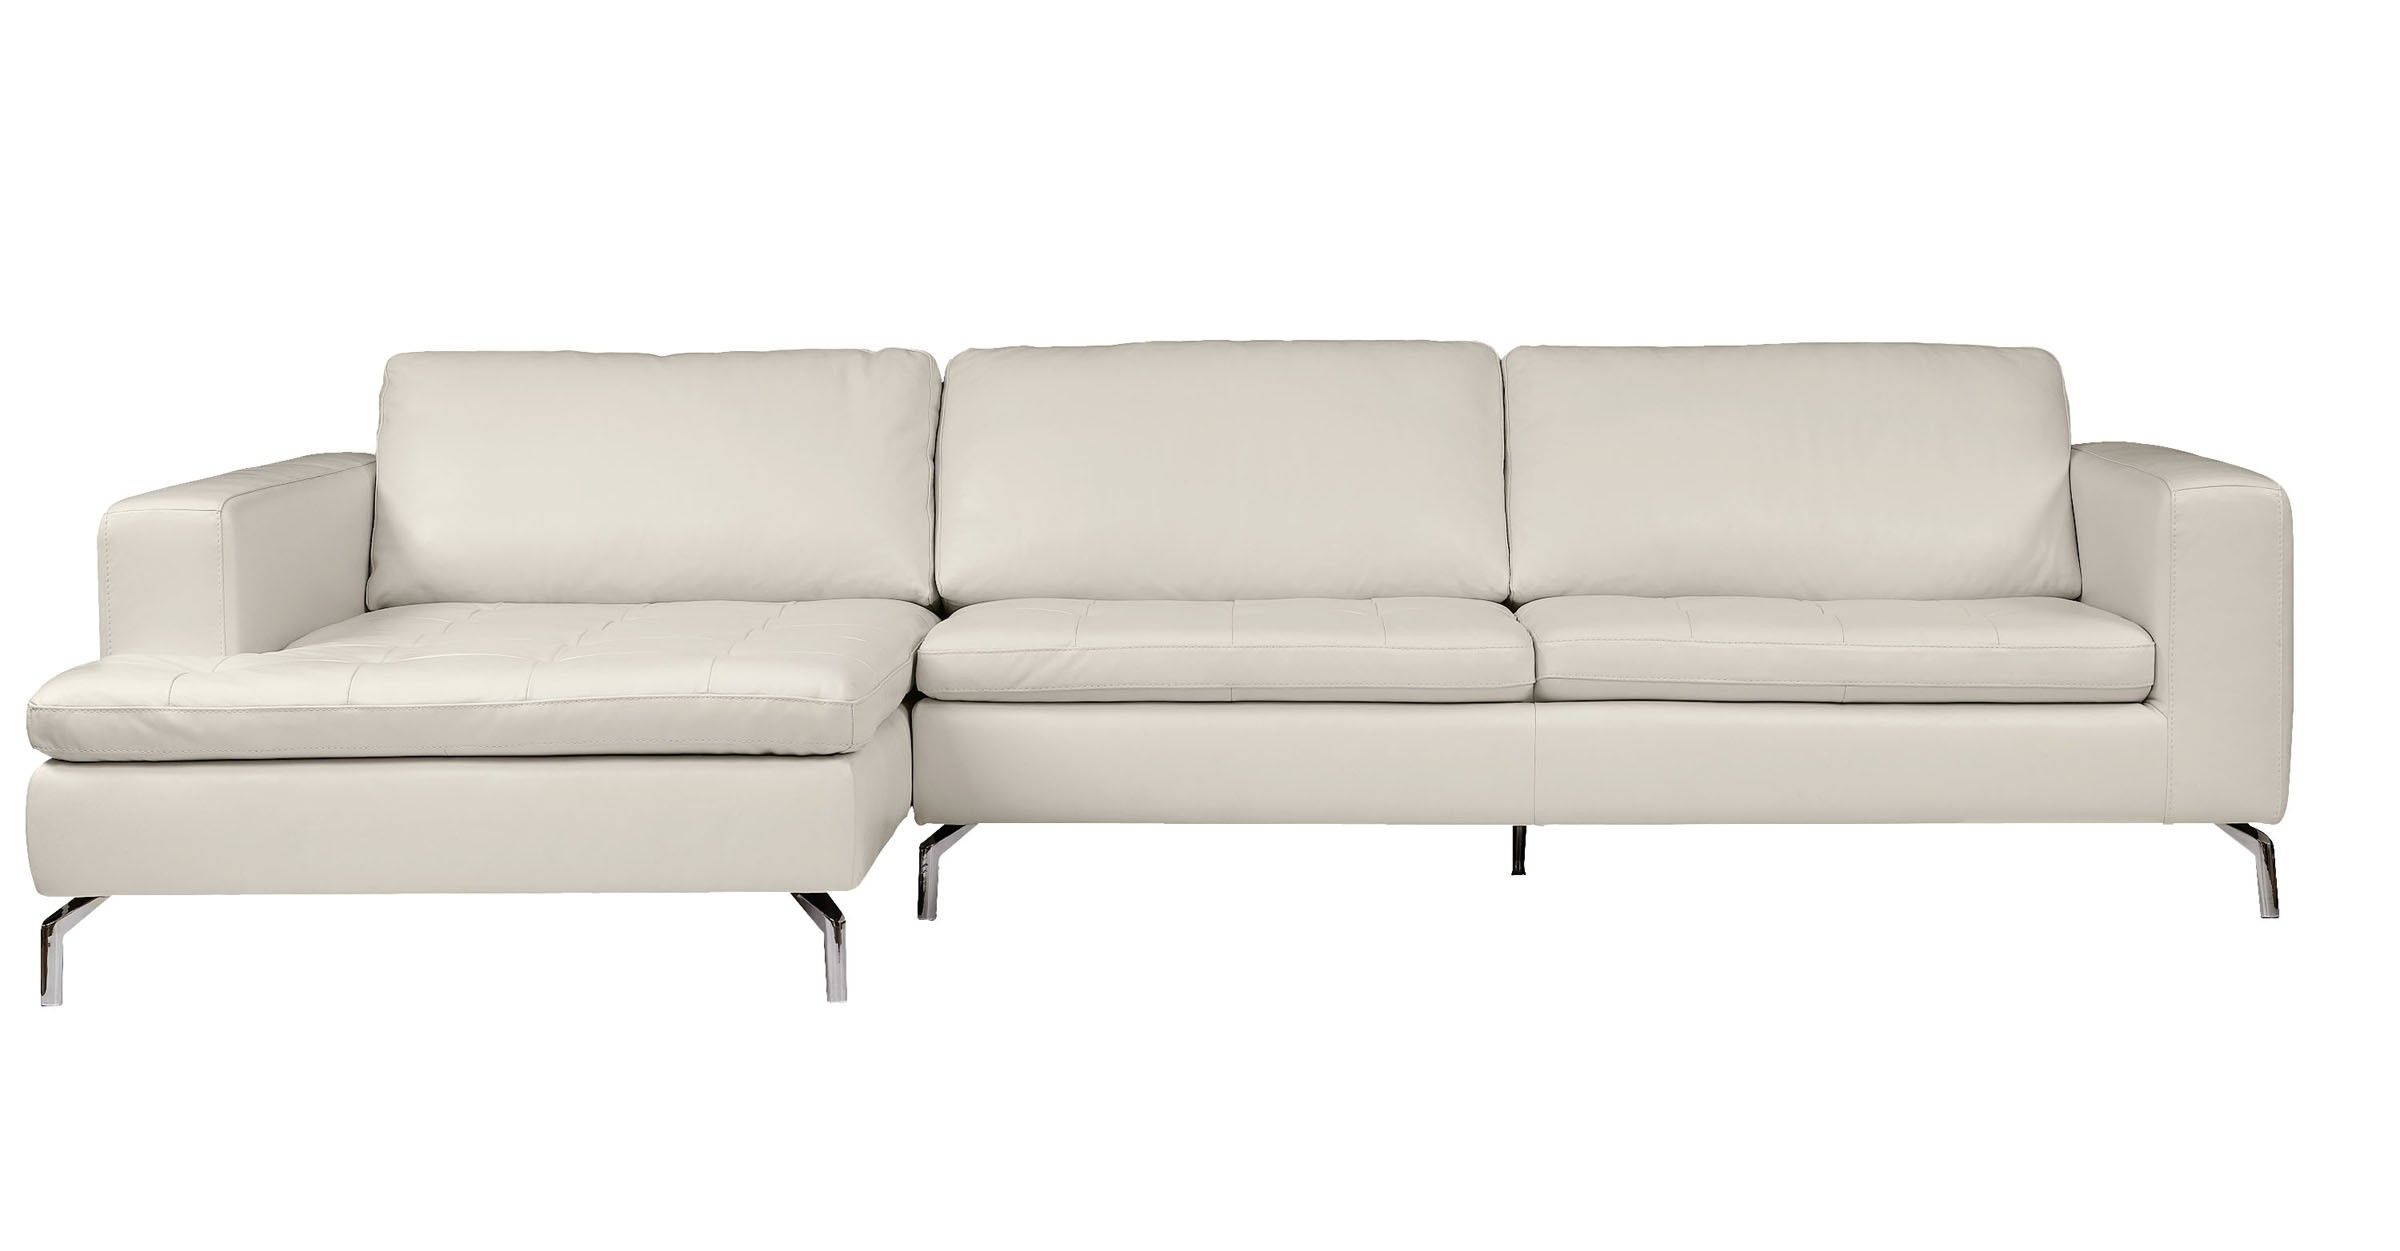 Natuzzi Italia Sectional Savoy 2458 Renovation Ideas